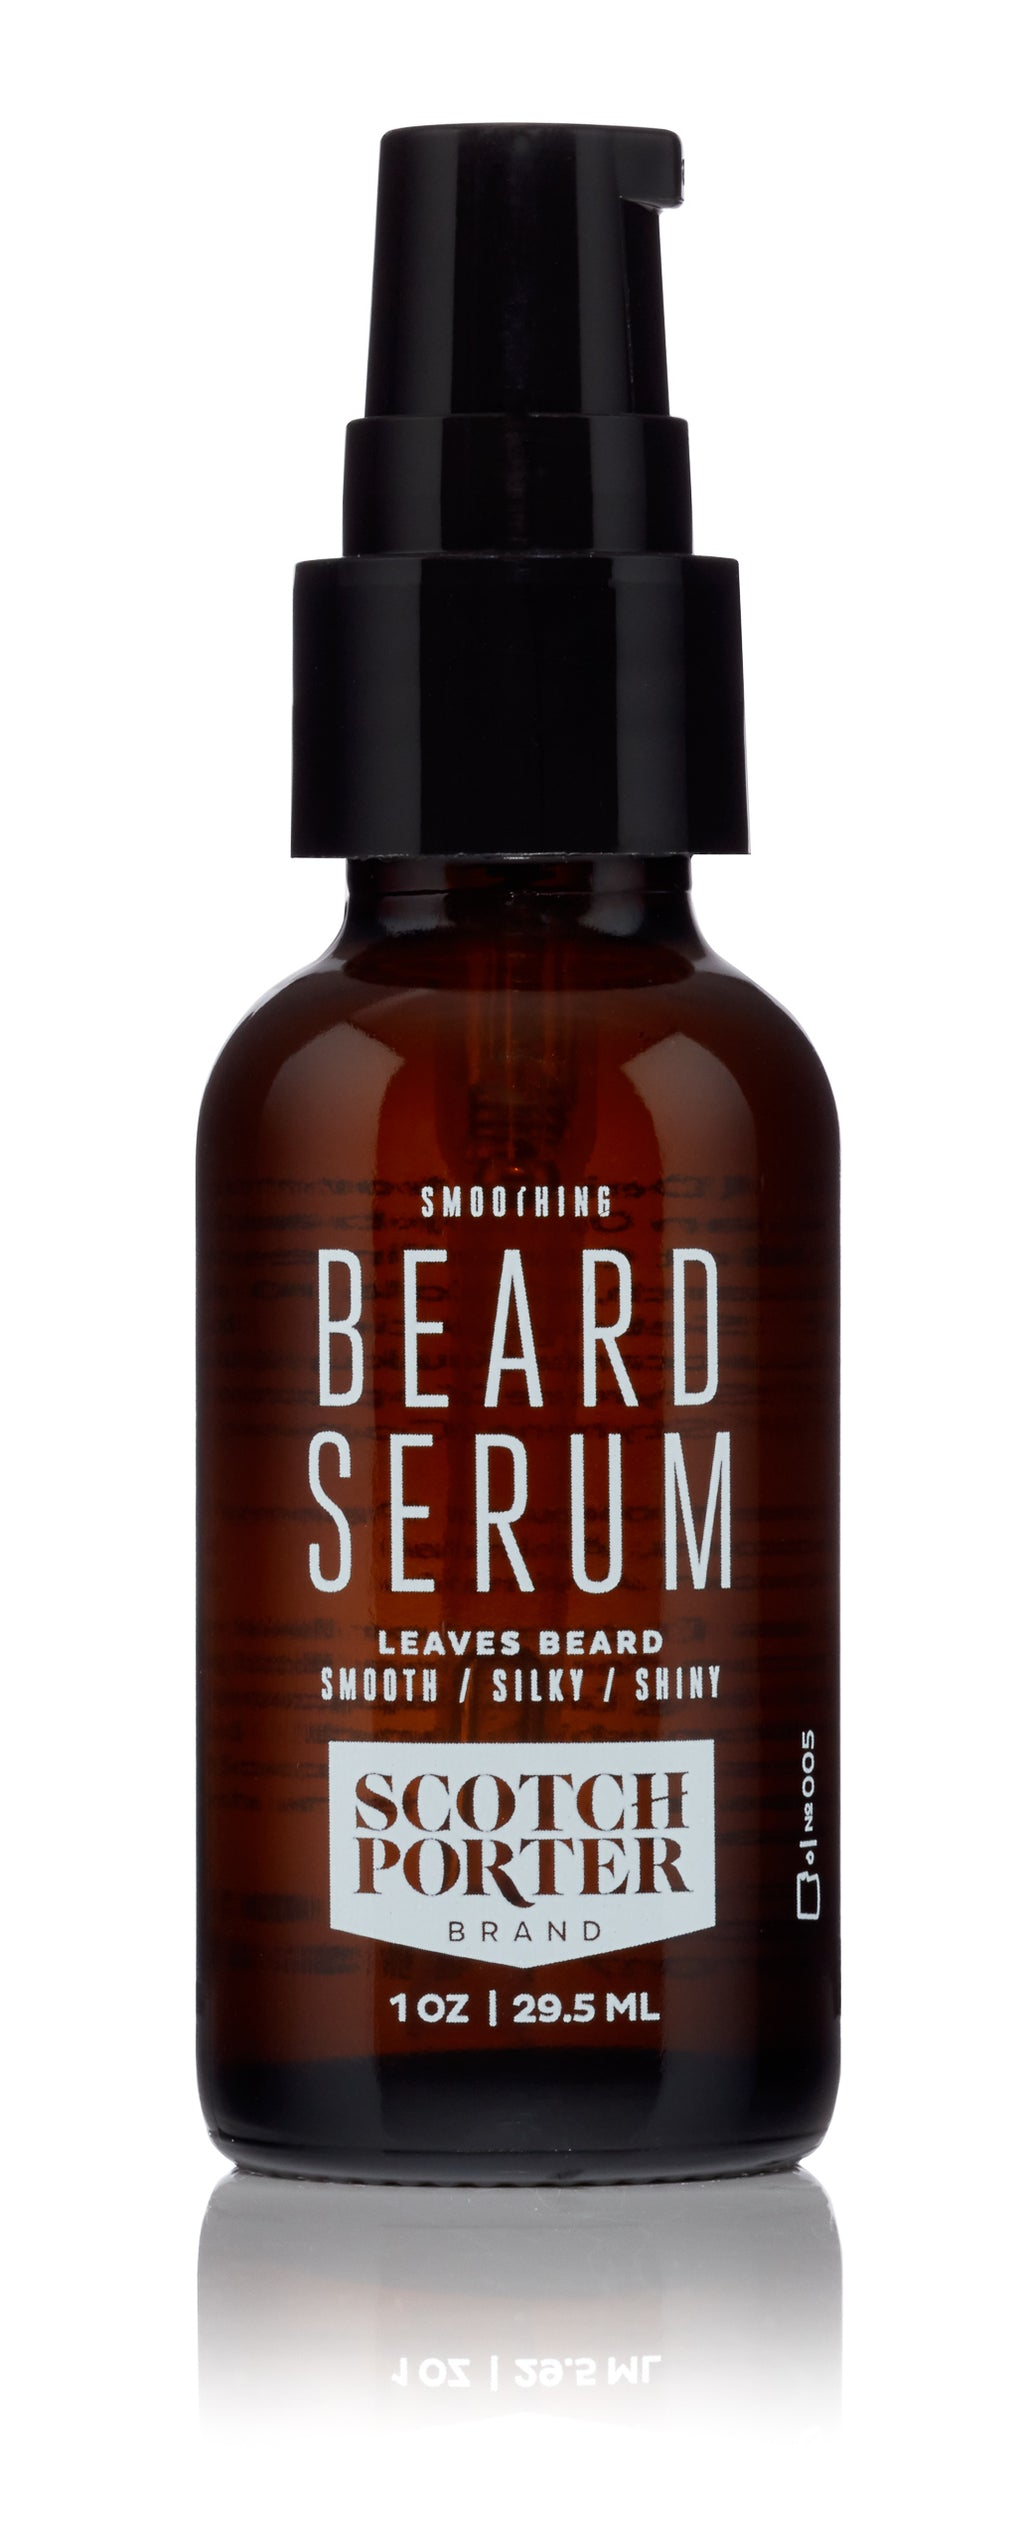 Smoothing Beard Serum